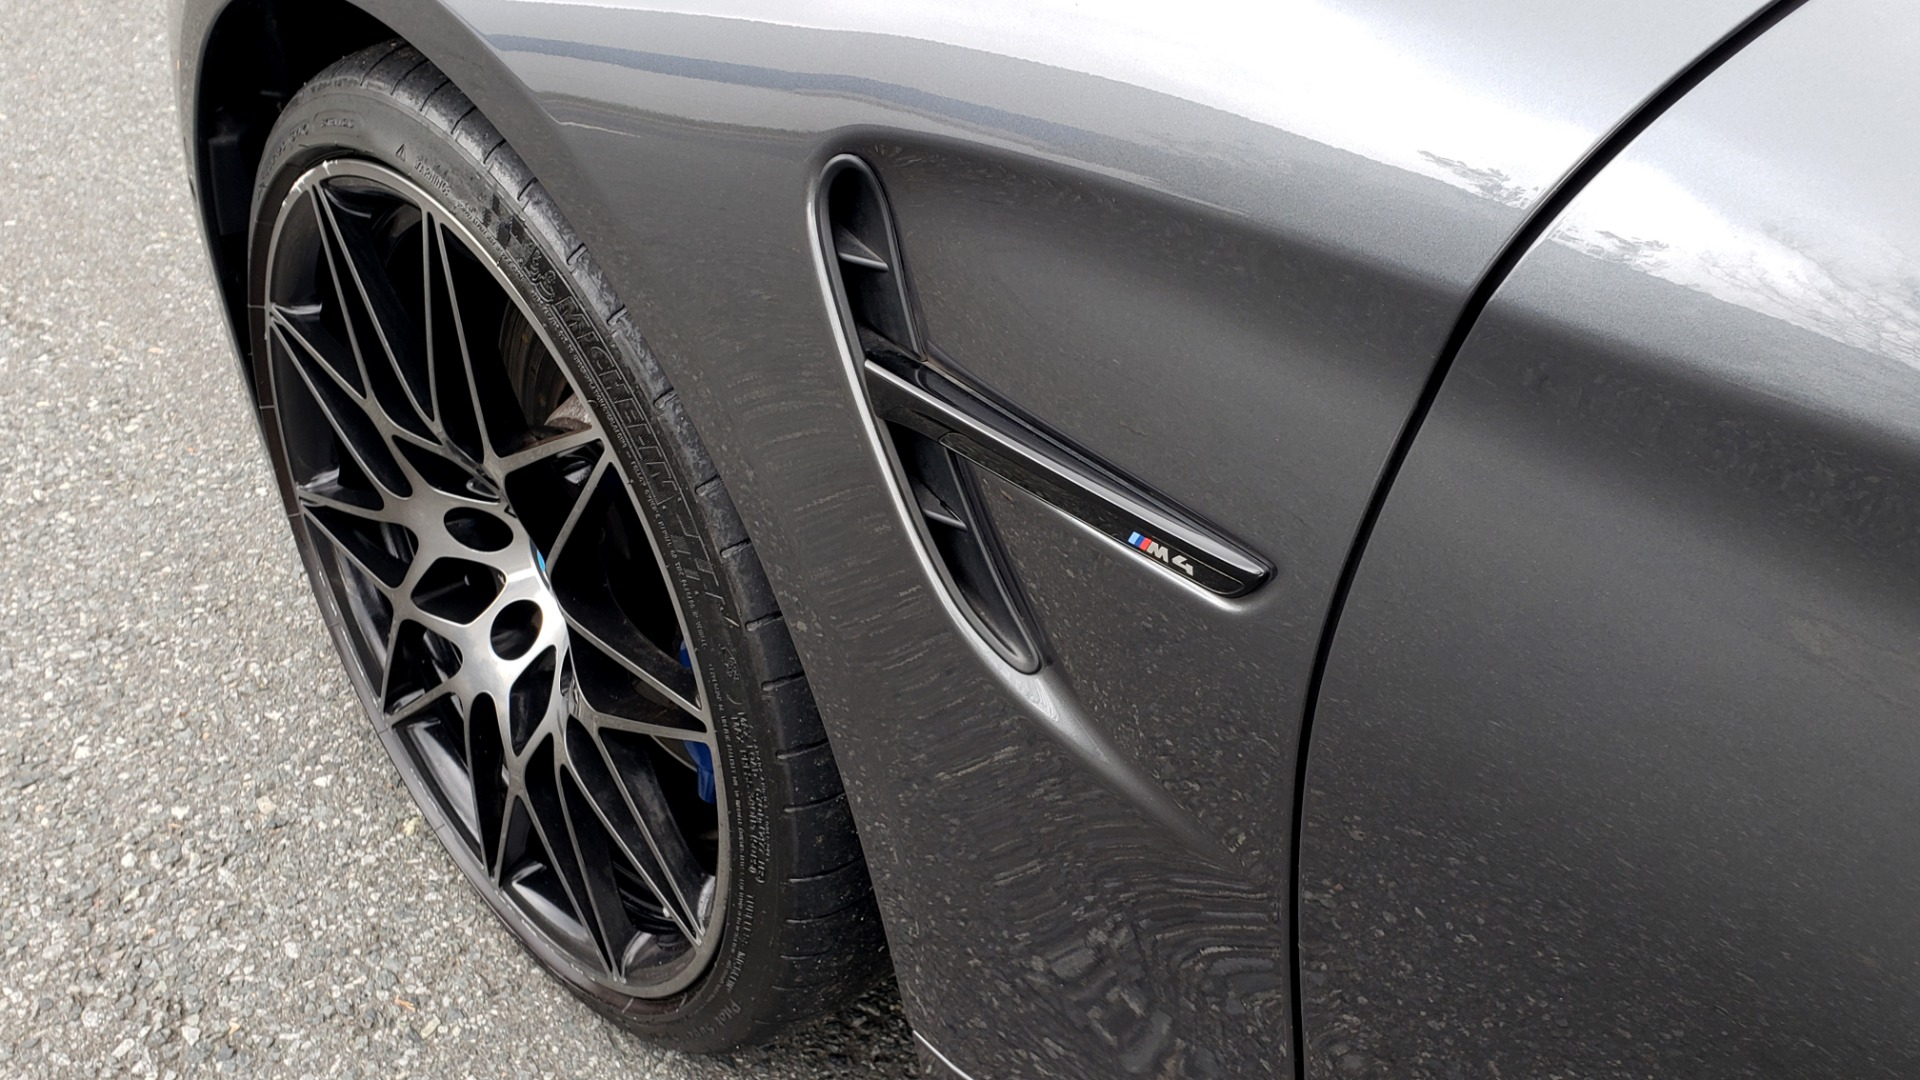 Used 2018 BMW M4 M-COMP / EXEC PKG / 7-SPD DBL CLUTCH / NAV / REARVIEW for sale Sold at Formula Imports in Charlotte NC 28227 9